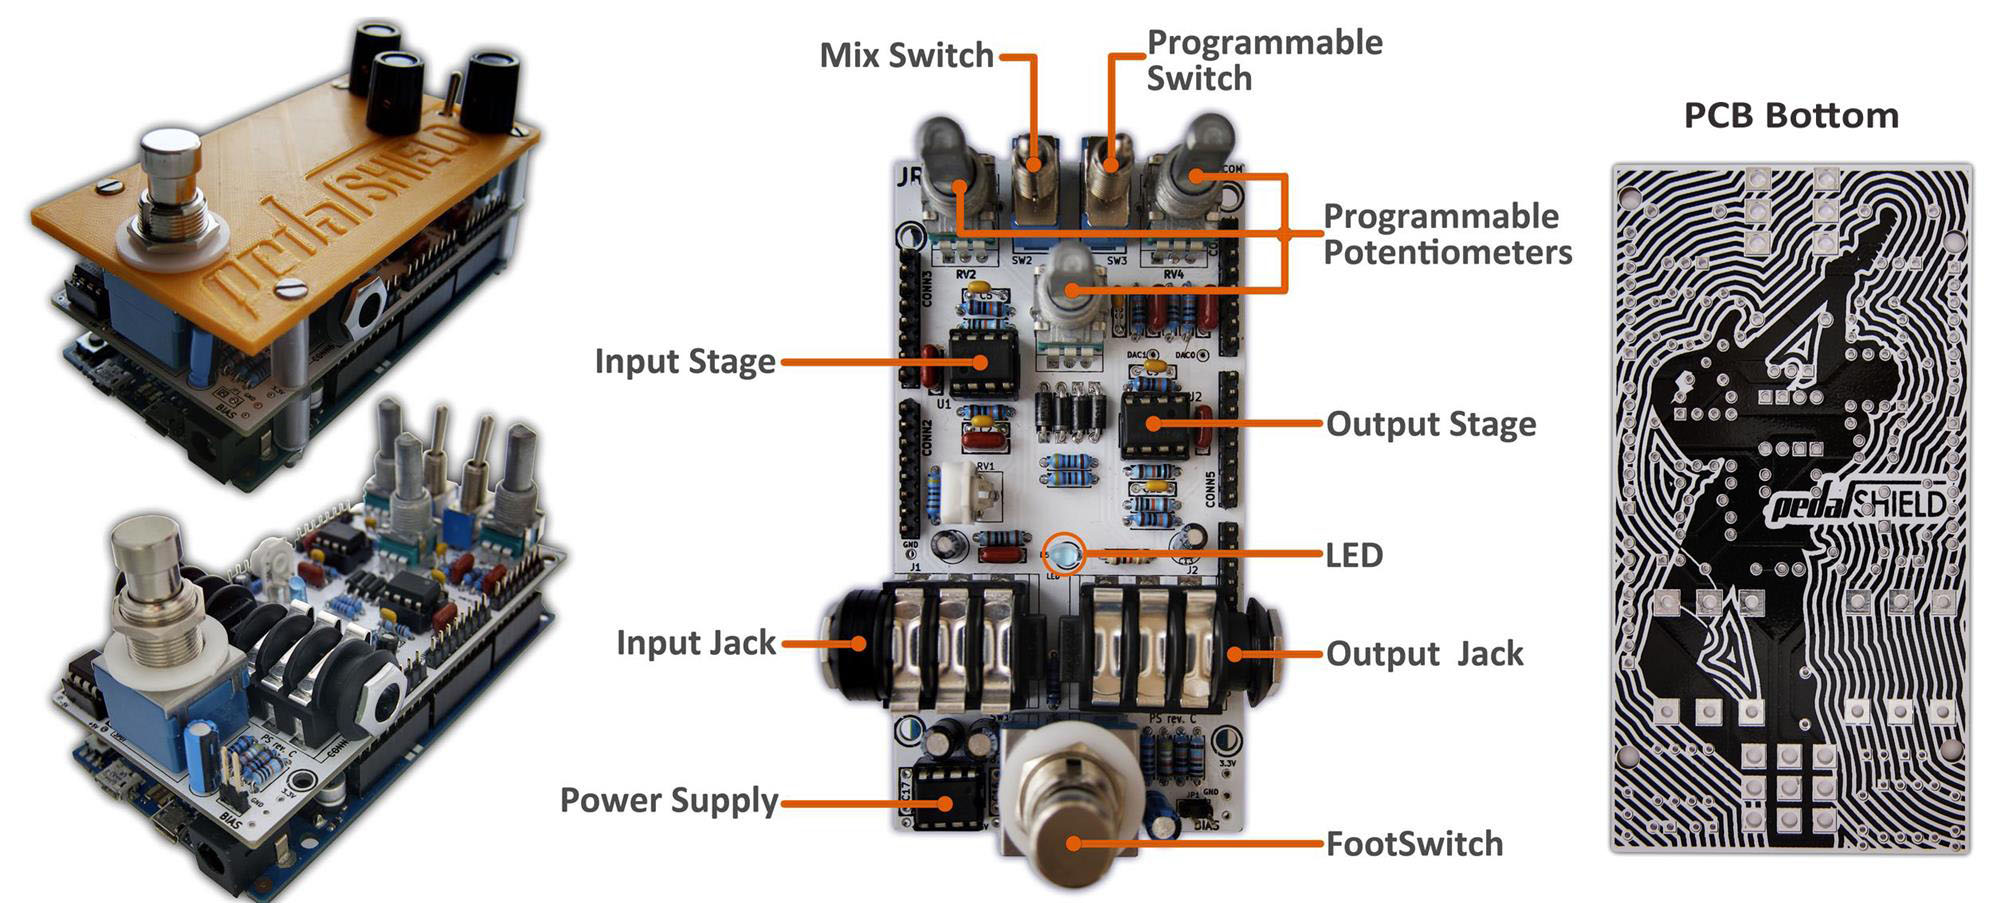 Arduino Multi Function Shield Demo Temperature Controller additionally Arduino mega 2560 pinout moreover Arduino And L293d Robot Part 1 together with Can Anyone Identify The Microcontroller On An Hc Sr04 likewise Wire Planning. on arduino shield schematic diagram